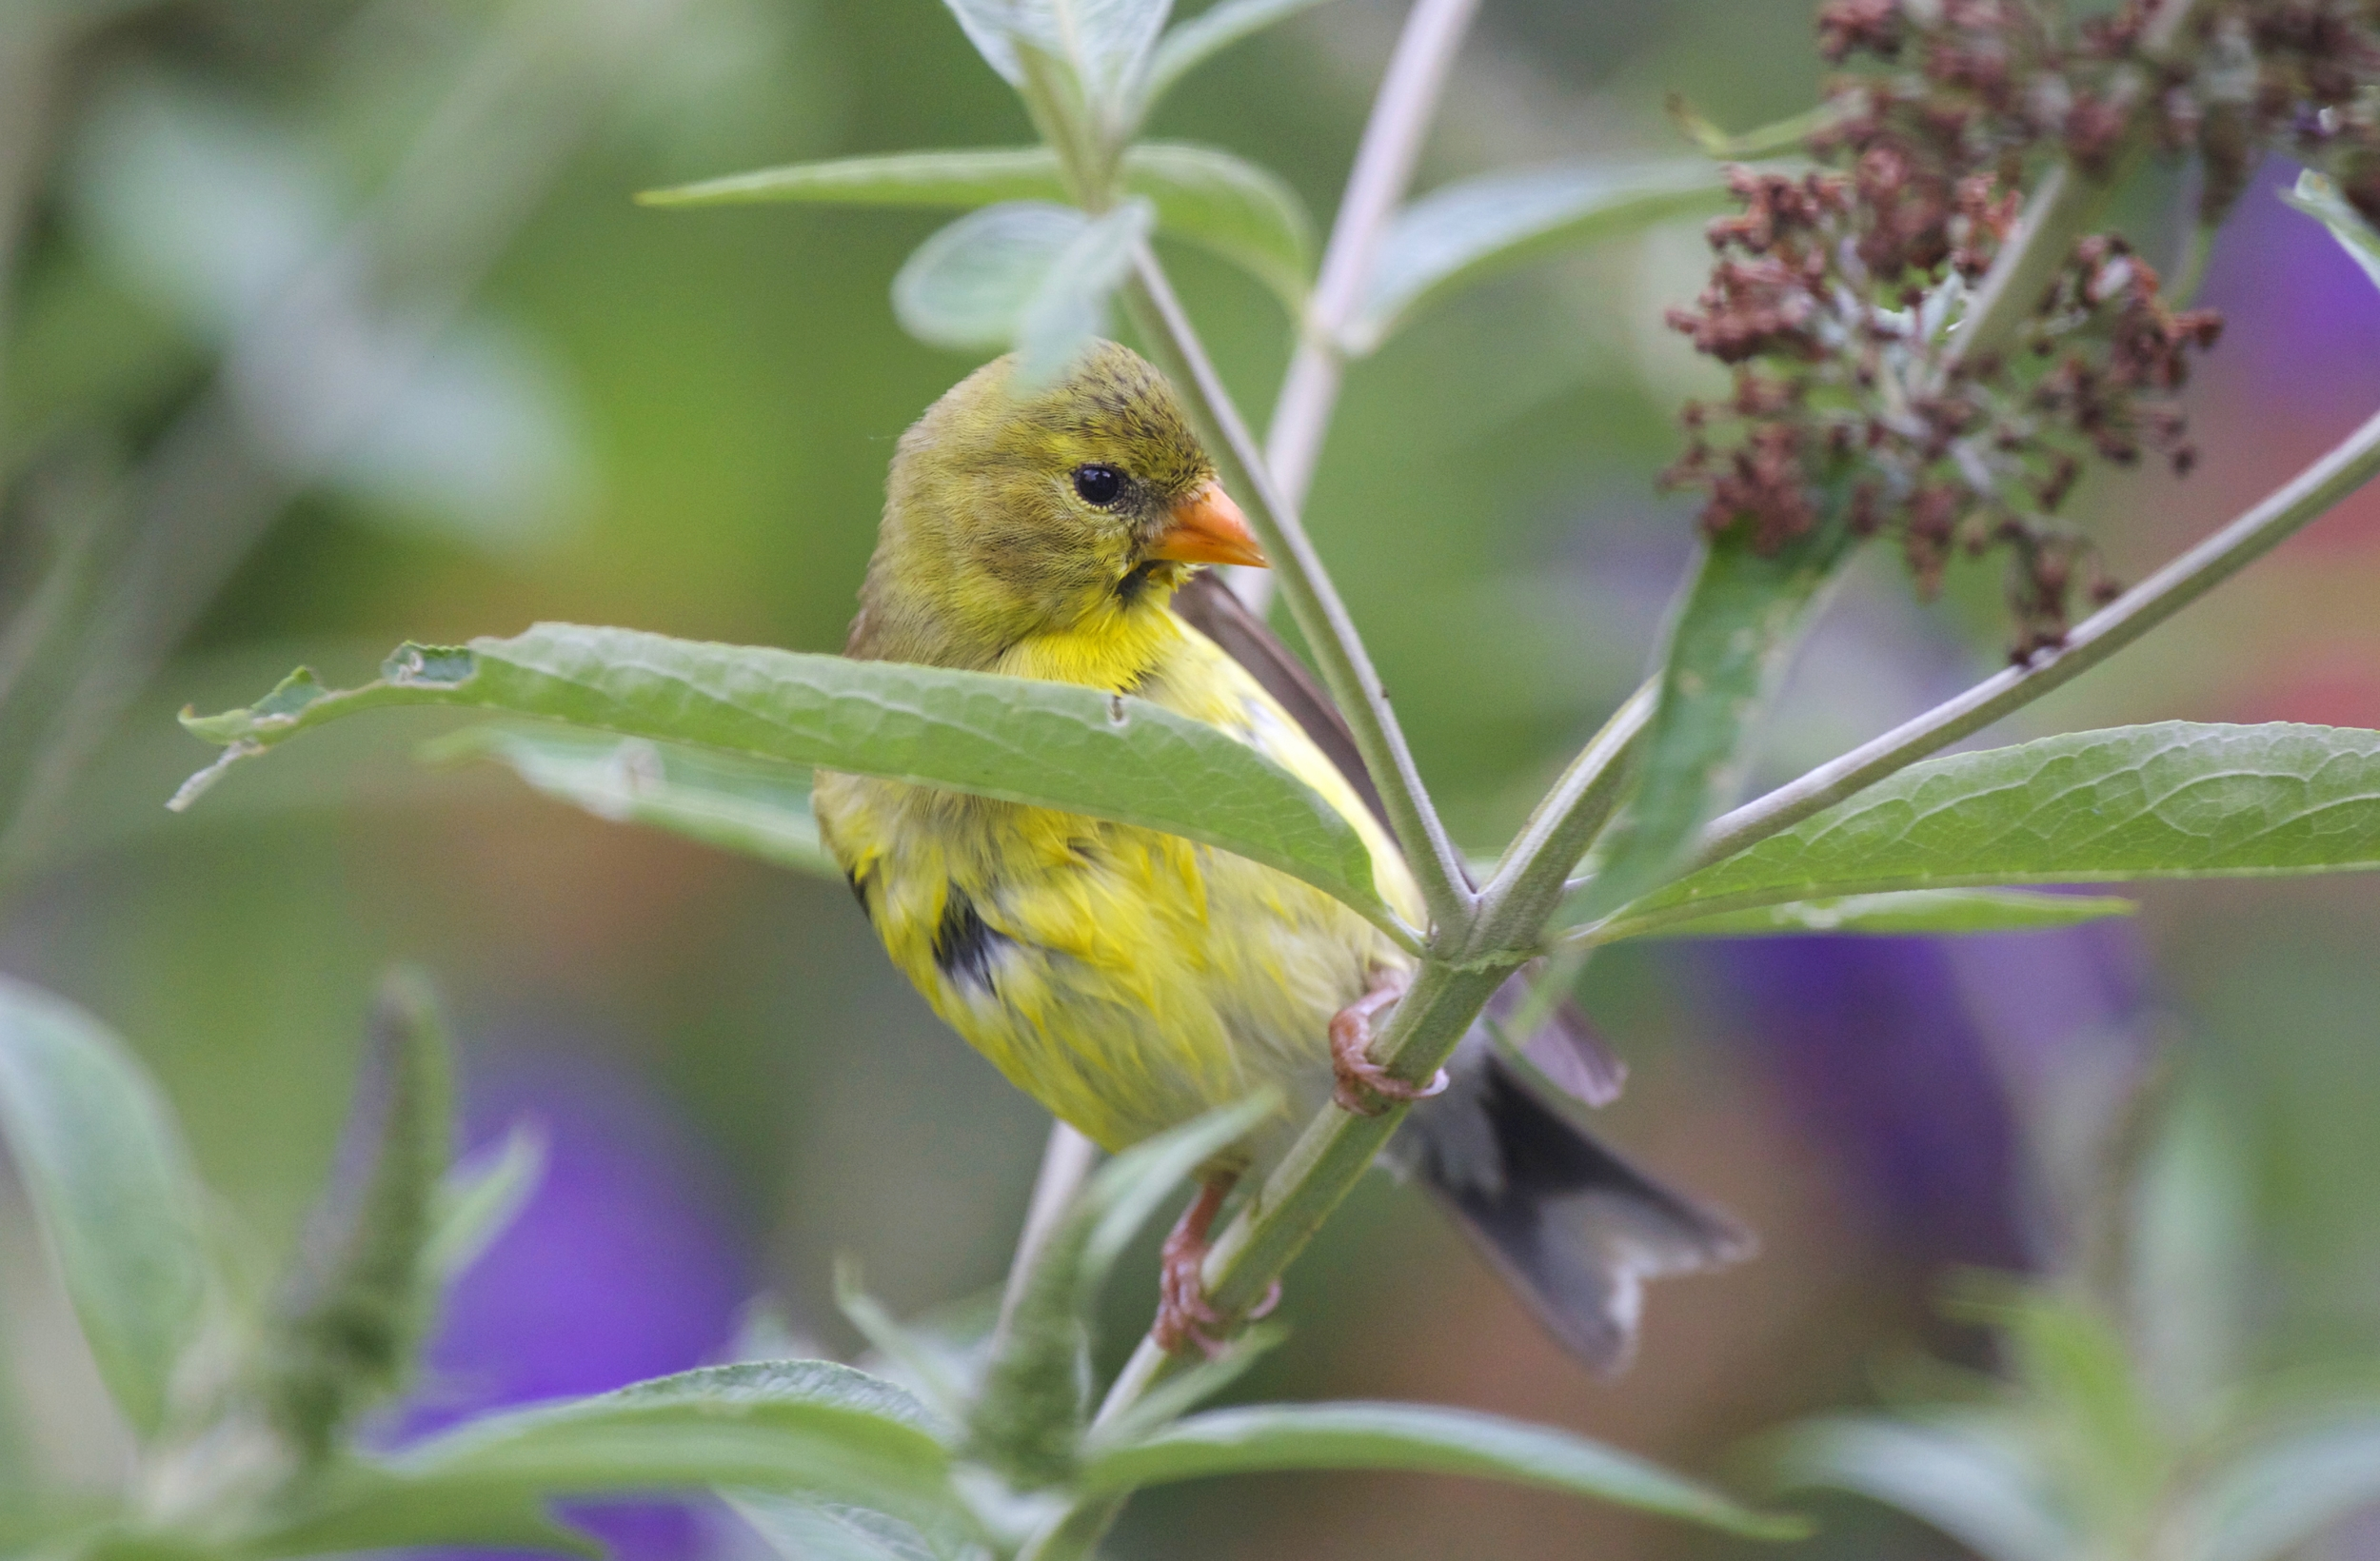 Female Goldfinch preening after her bath. Photo taken from my office window.